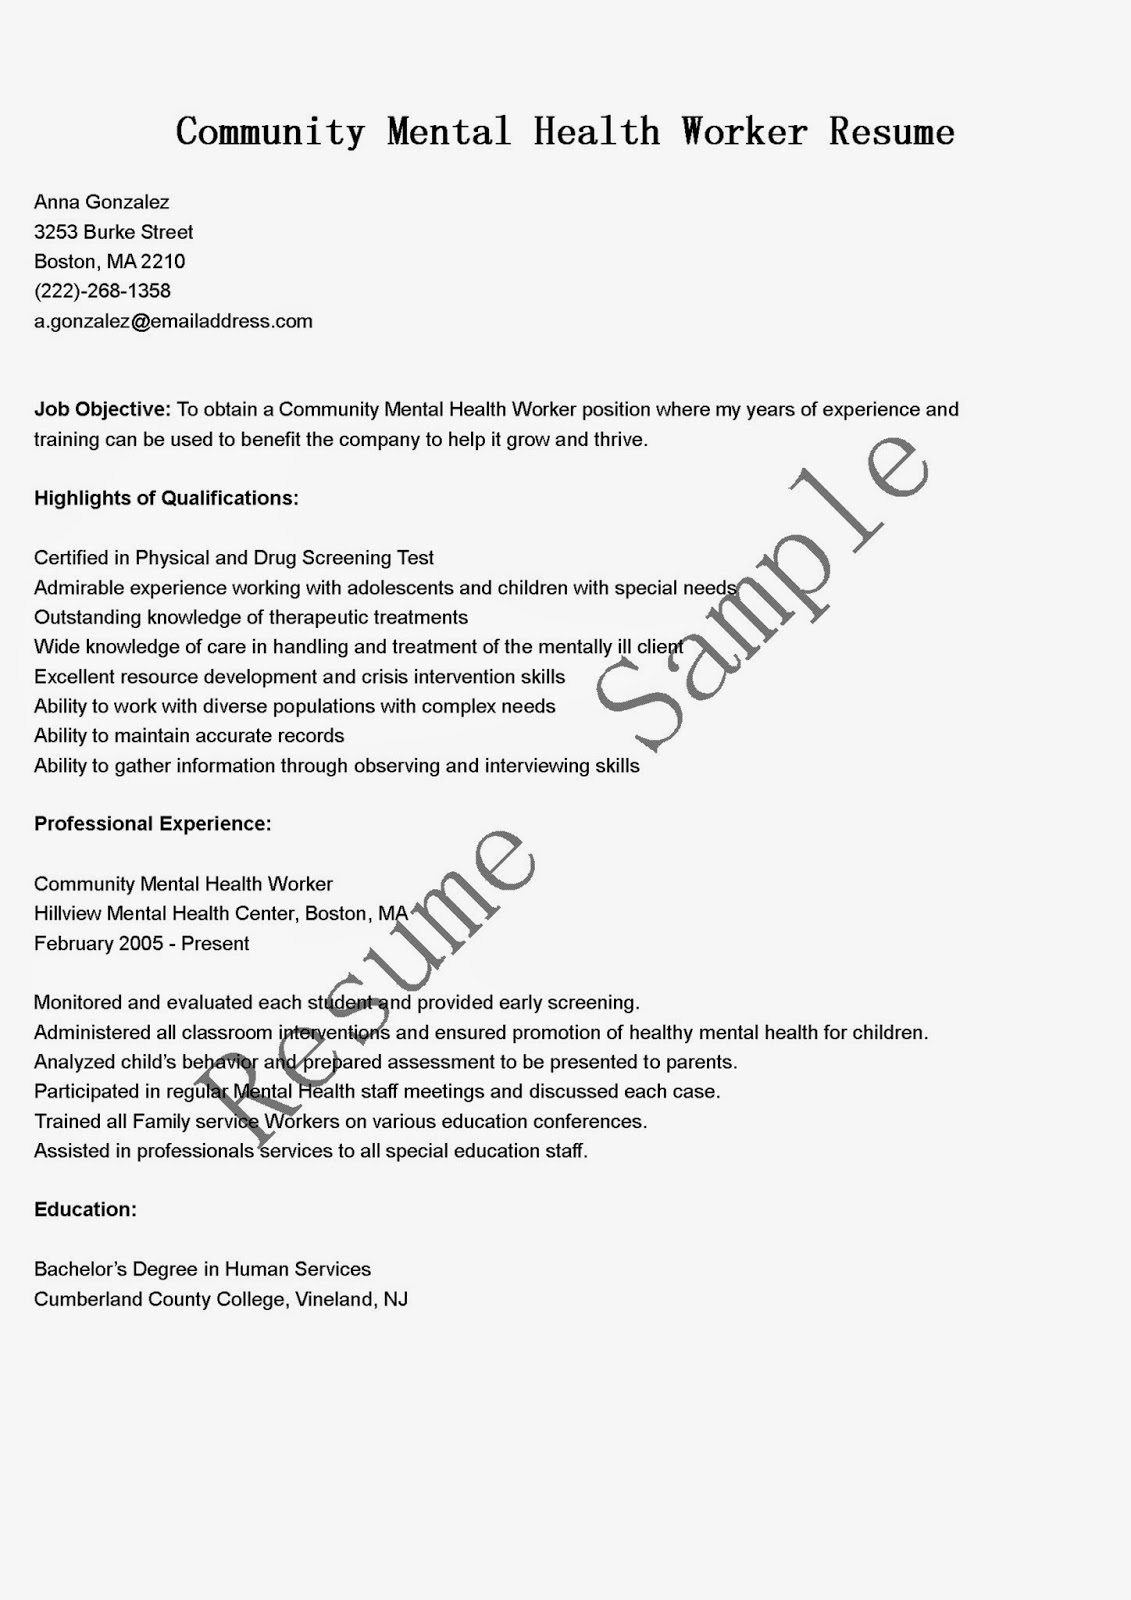 resume samples community mental health worker sample objective for mba examples college Resume Objective For Mental Health Resume